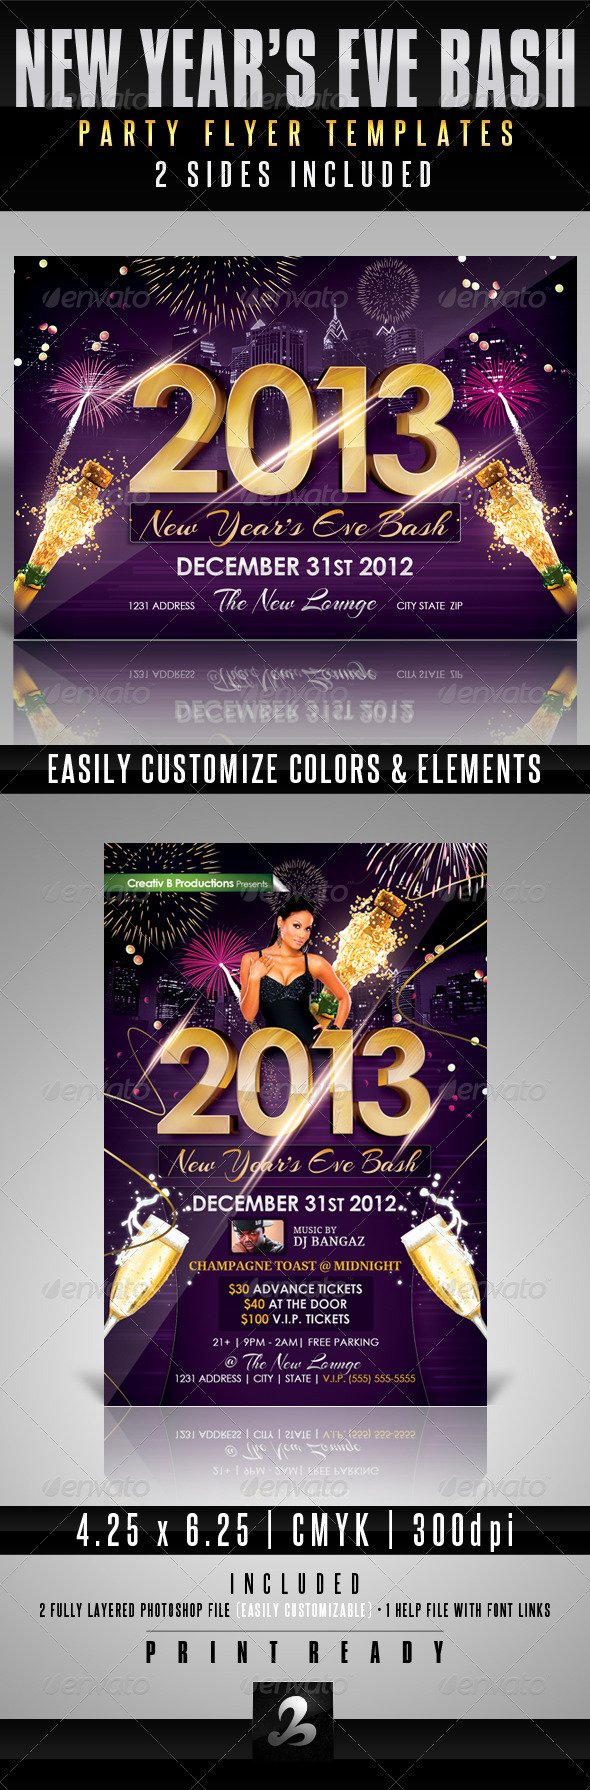 New Year's Eve Bash Party Flyer Templates - Clubs & Parties Events